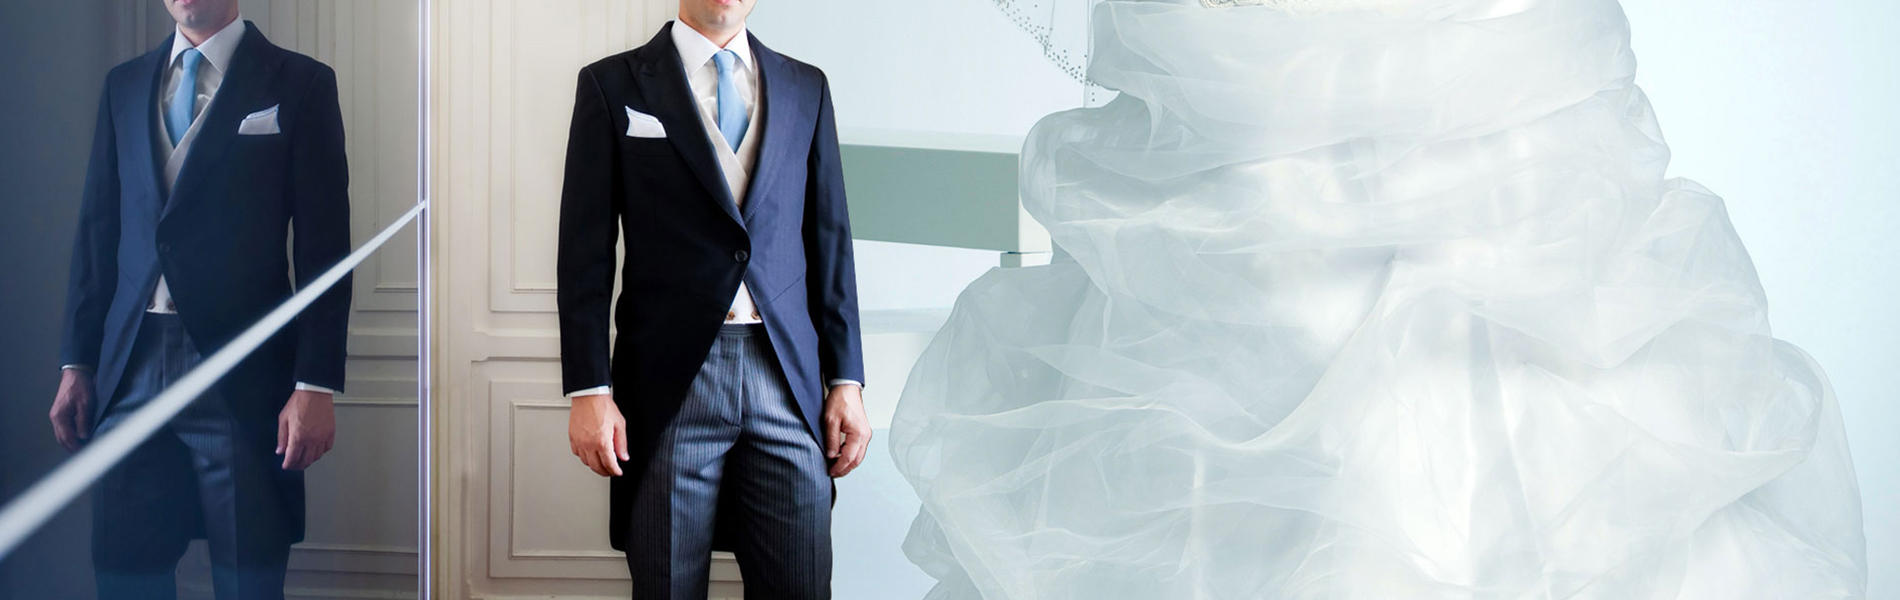 sublimefrance-collection-homme-mariage3